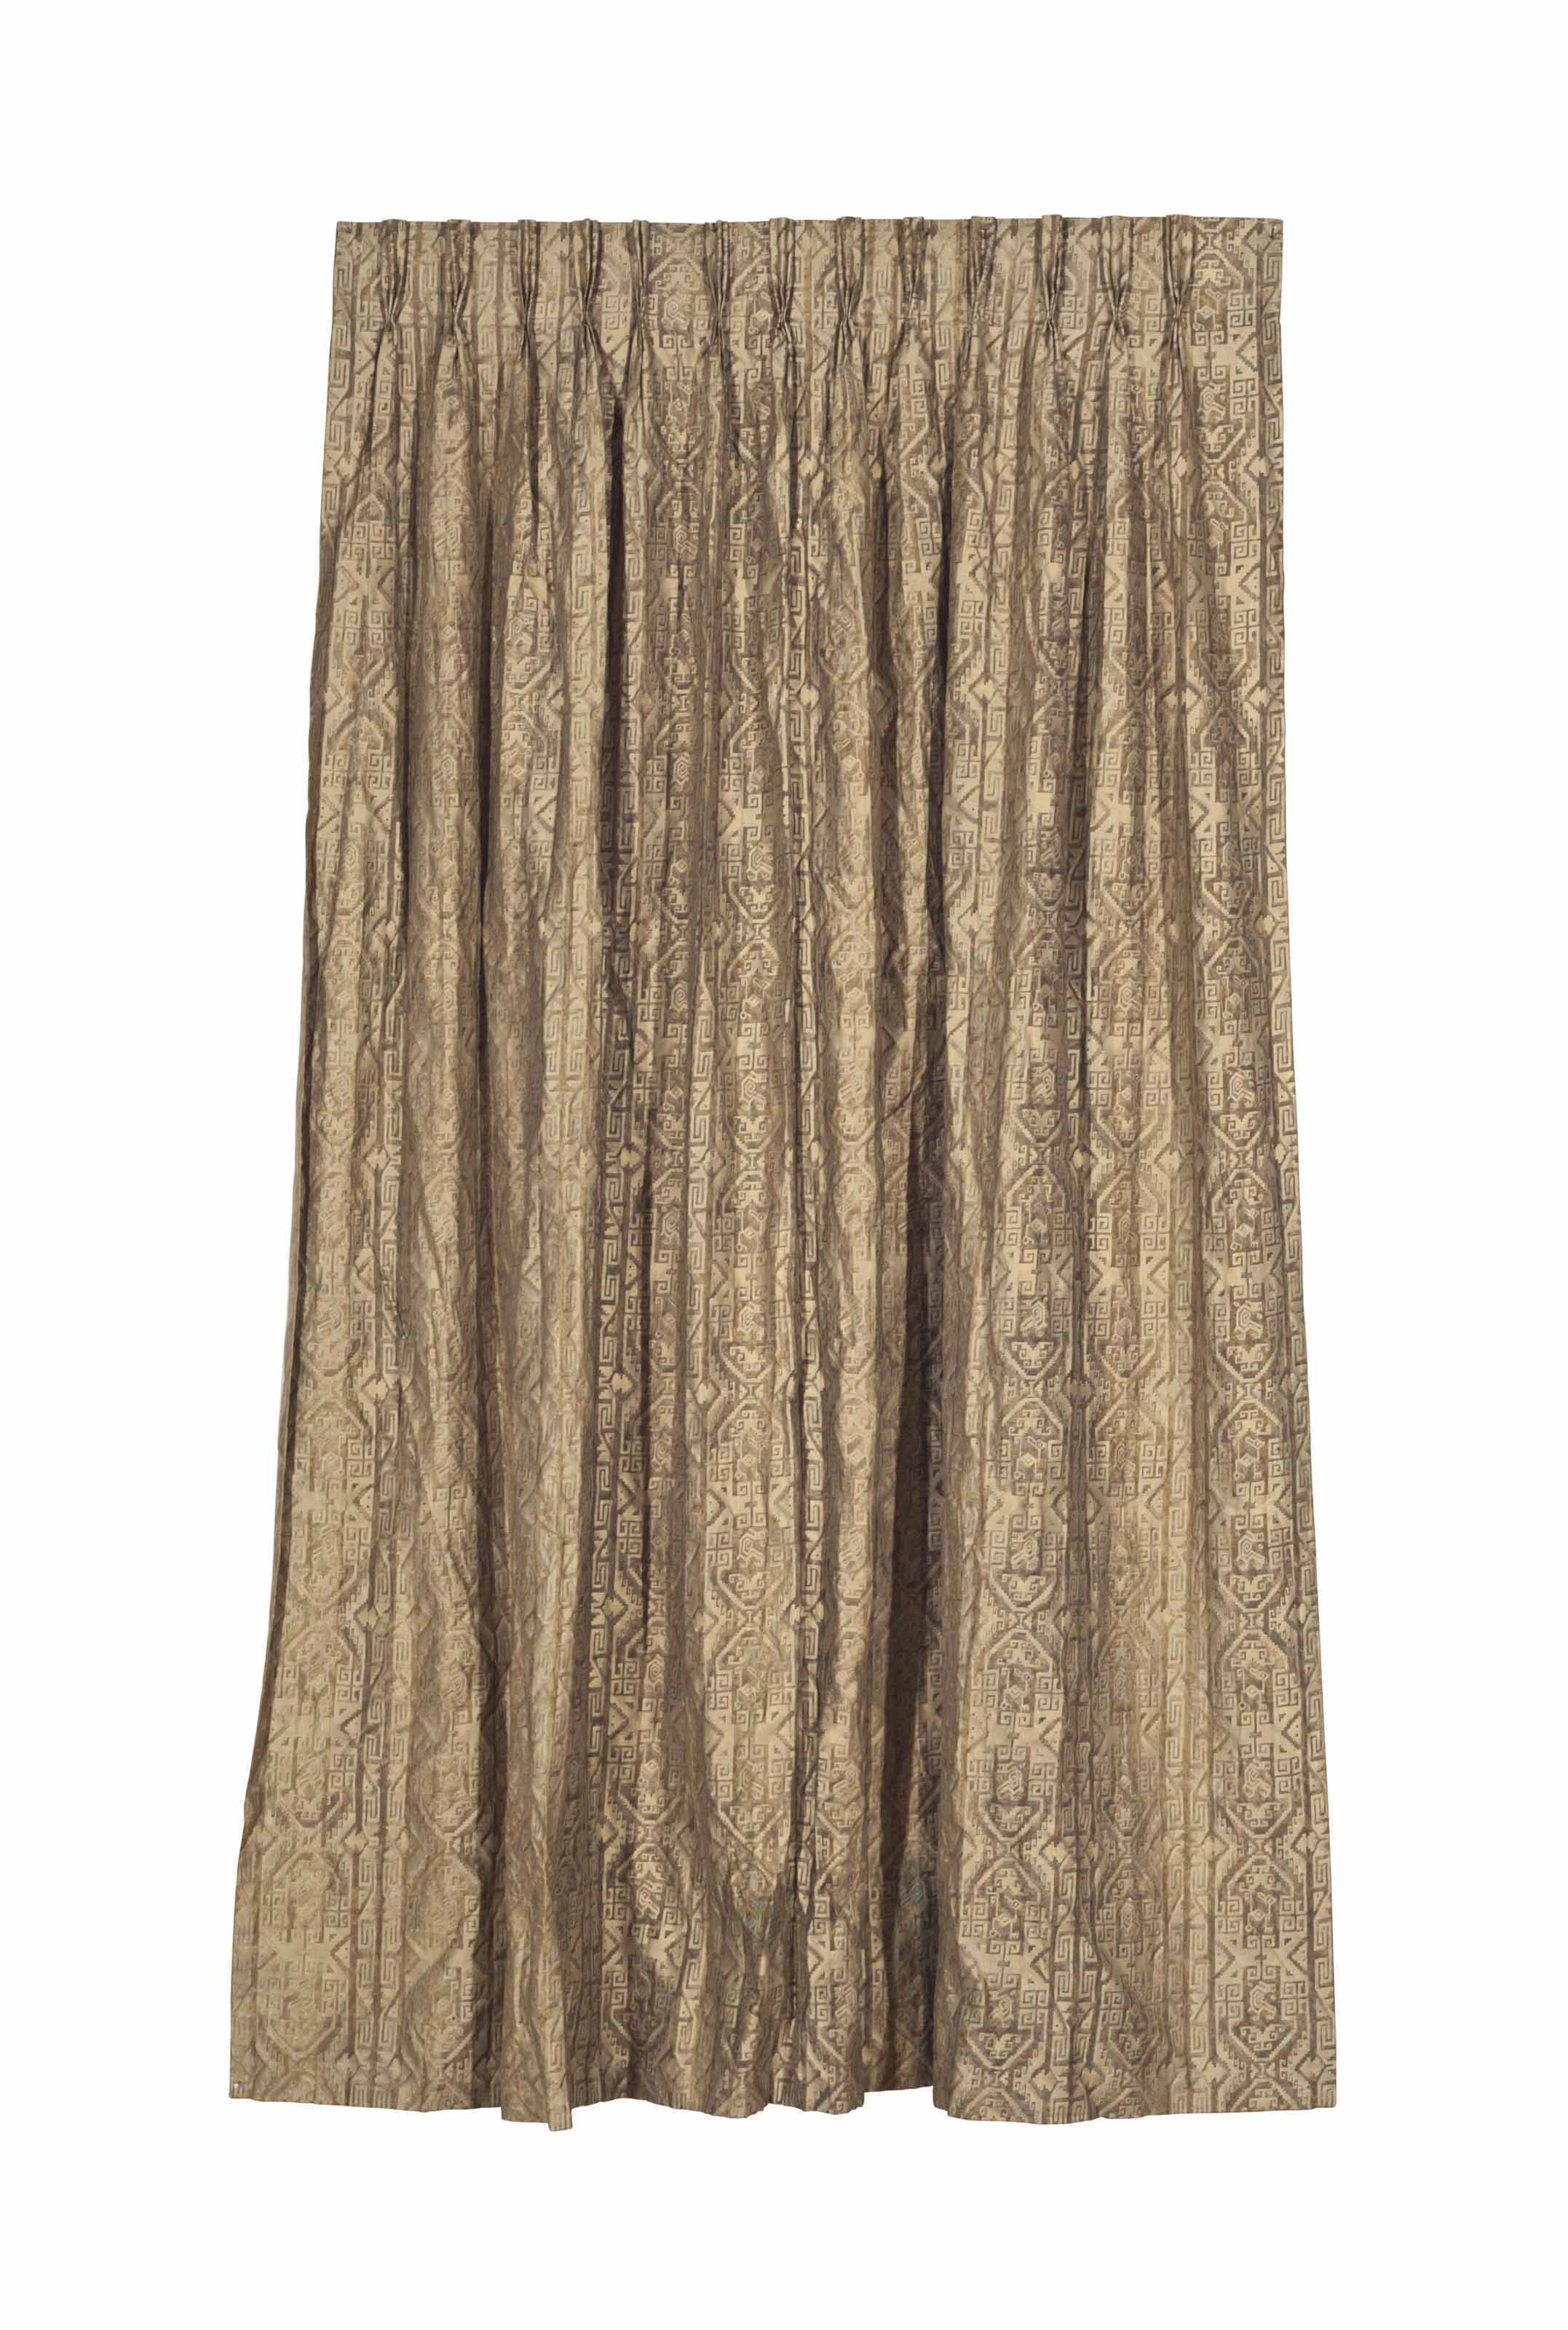 THREE FORTUNY CURTAIN PANELS